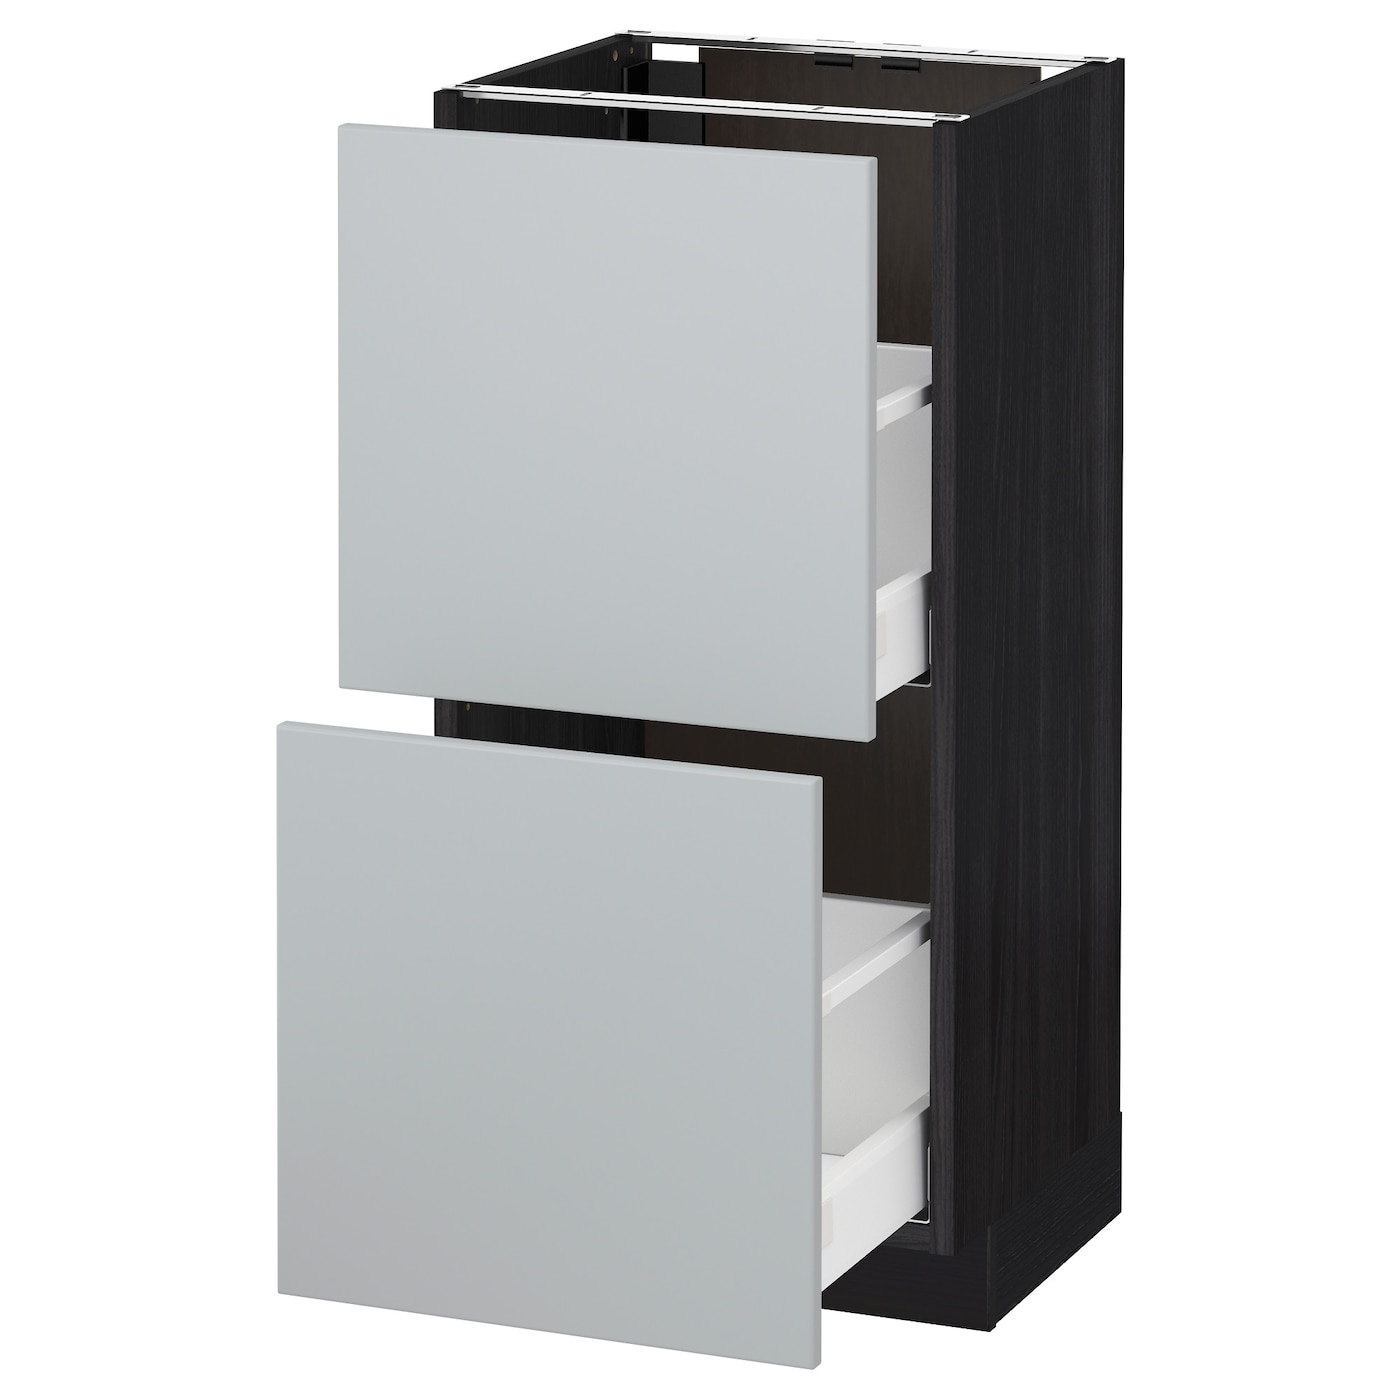 metod maximera base cabinet with 2 drawers black veddinge grey 40 x 37 cm ikea. Black Bedroom Furniture Sets. Home Design Ideas